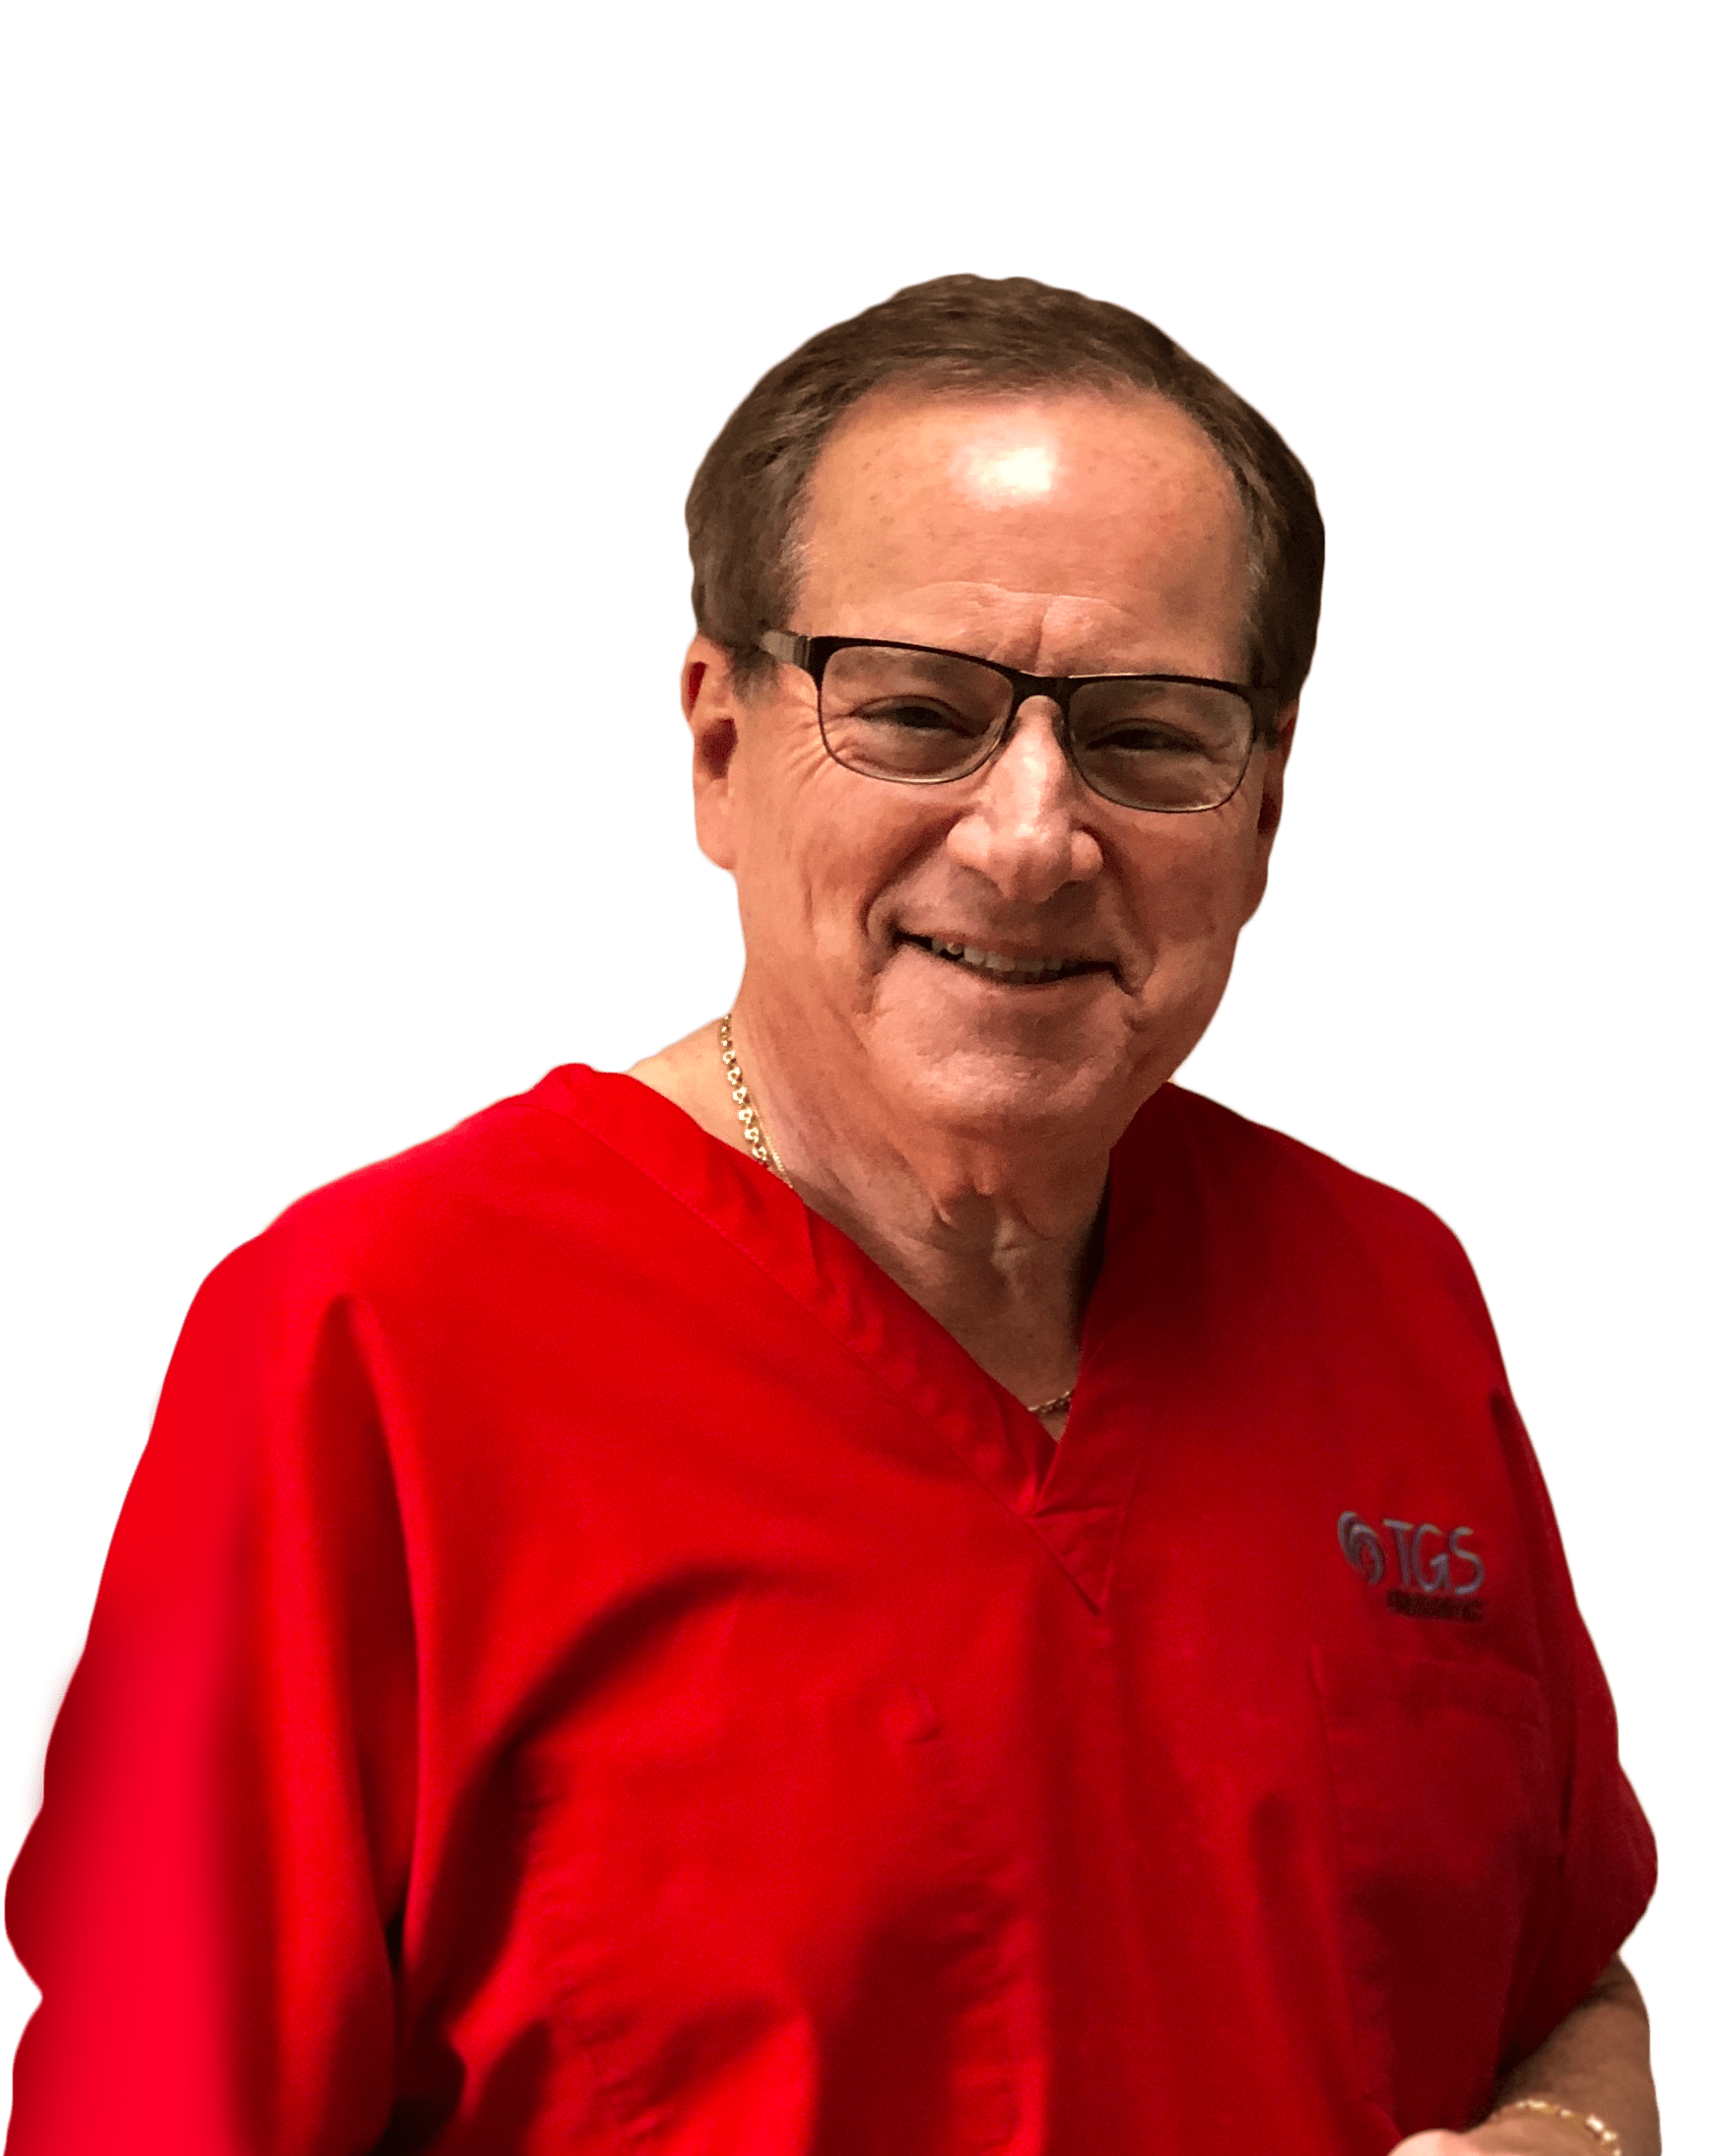 Dr. Richard Shapiro | Atlanta Endodontist